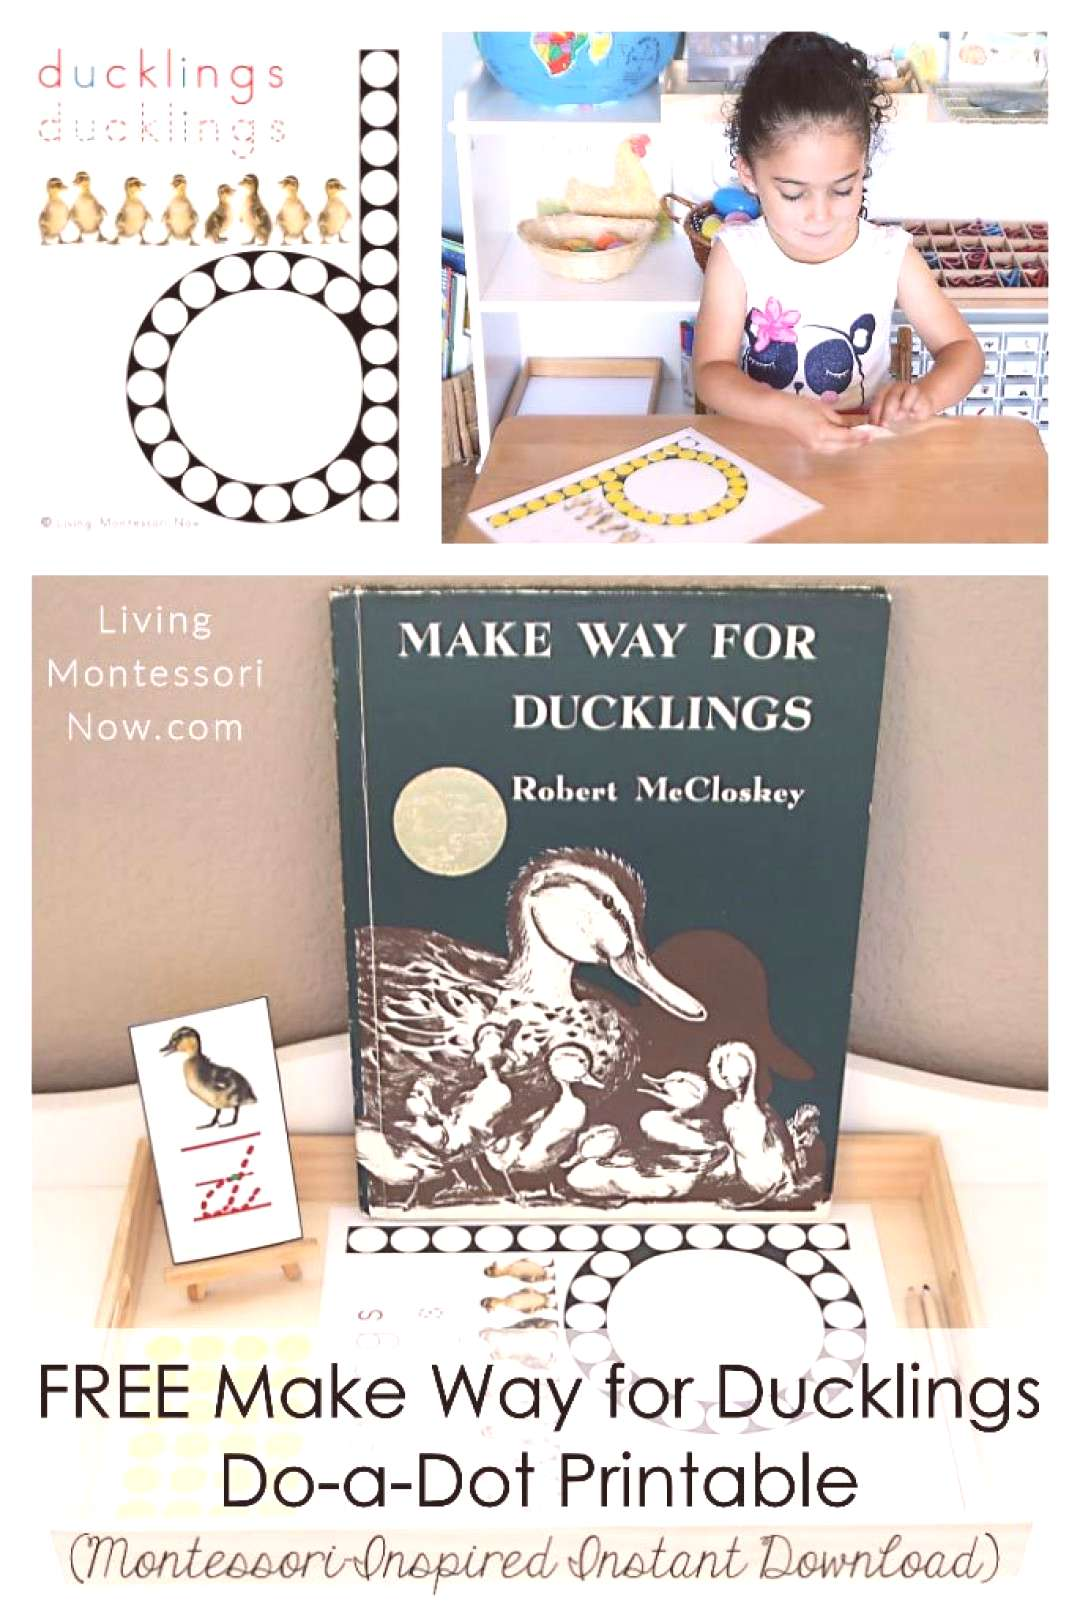 This free Make Way for Ducklings do-a-dot printable is a Montessori-inspired printable for home or